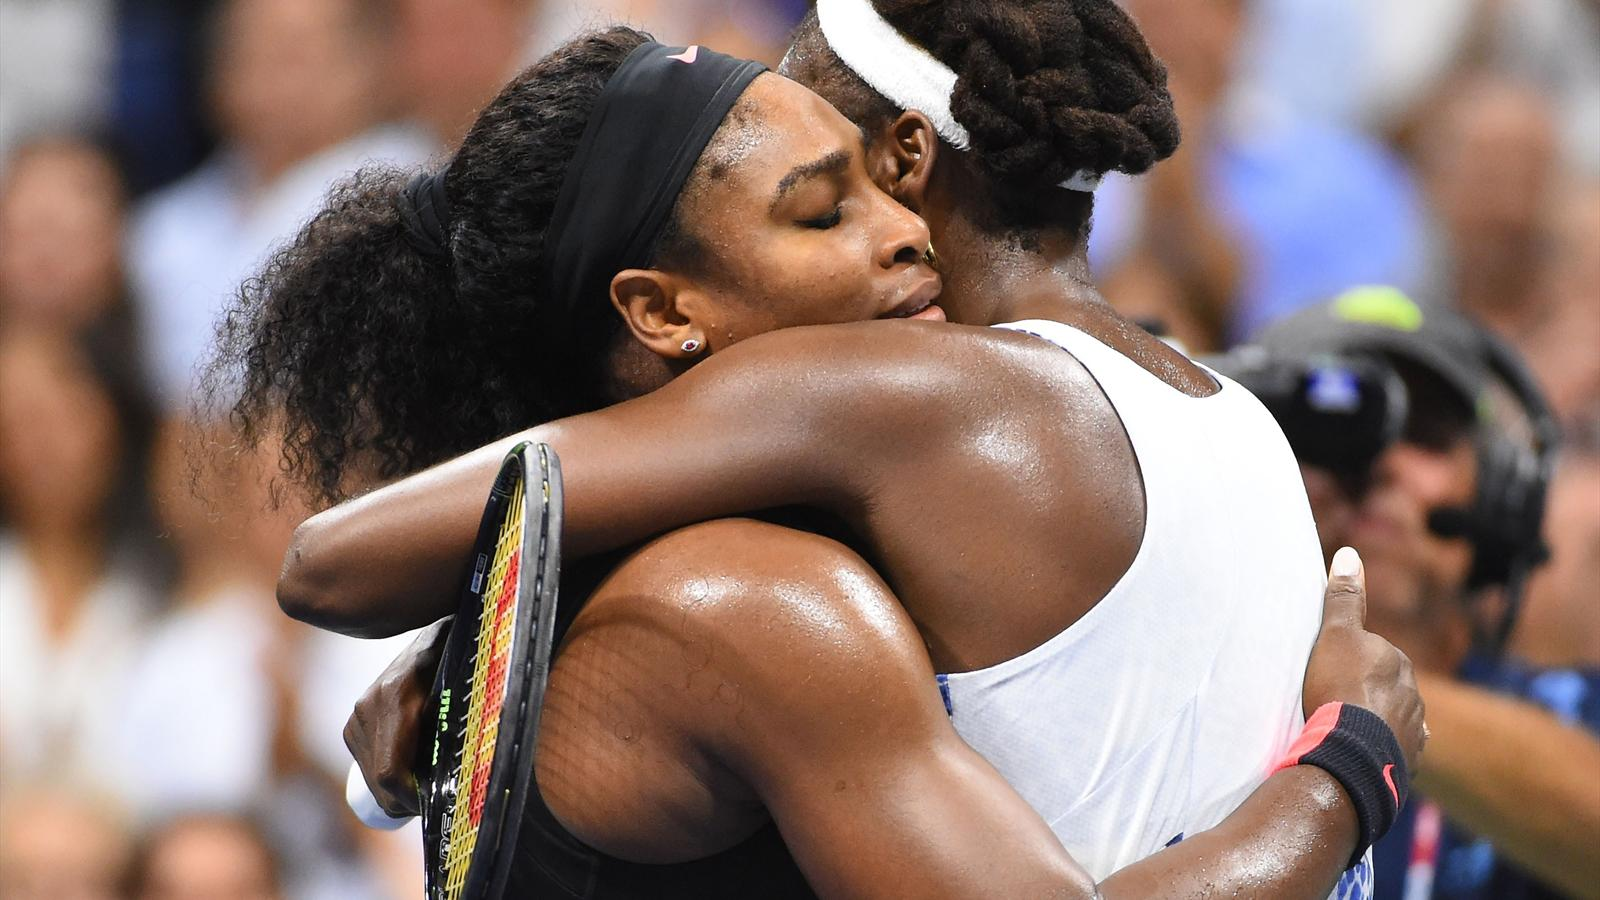 Serena Williams of the USA (left) hugs sister Venus Williams of the USA after their match on day nine of the 2015 U.S. Open tennis tournament at USTA Billie Jean King National Tennis Center